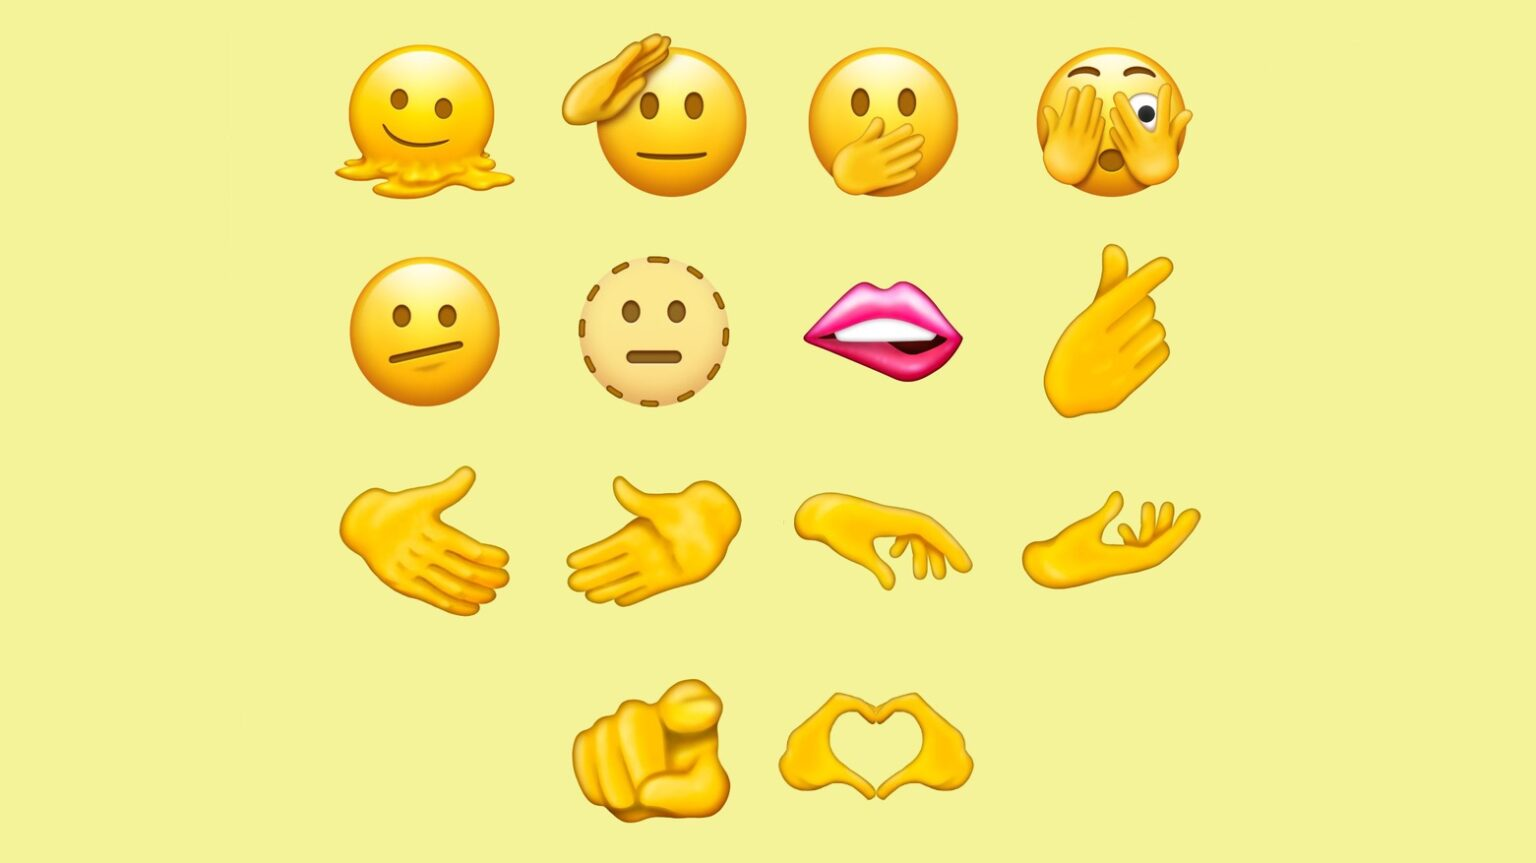 Next round of new emoji will let you salute, melt, gasp and point